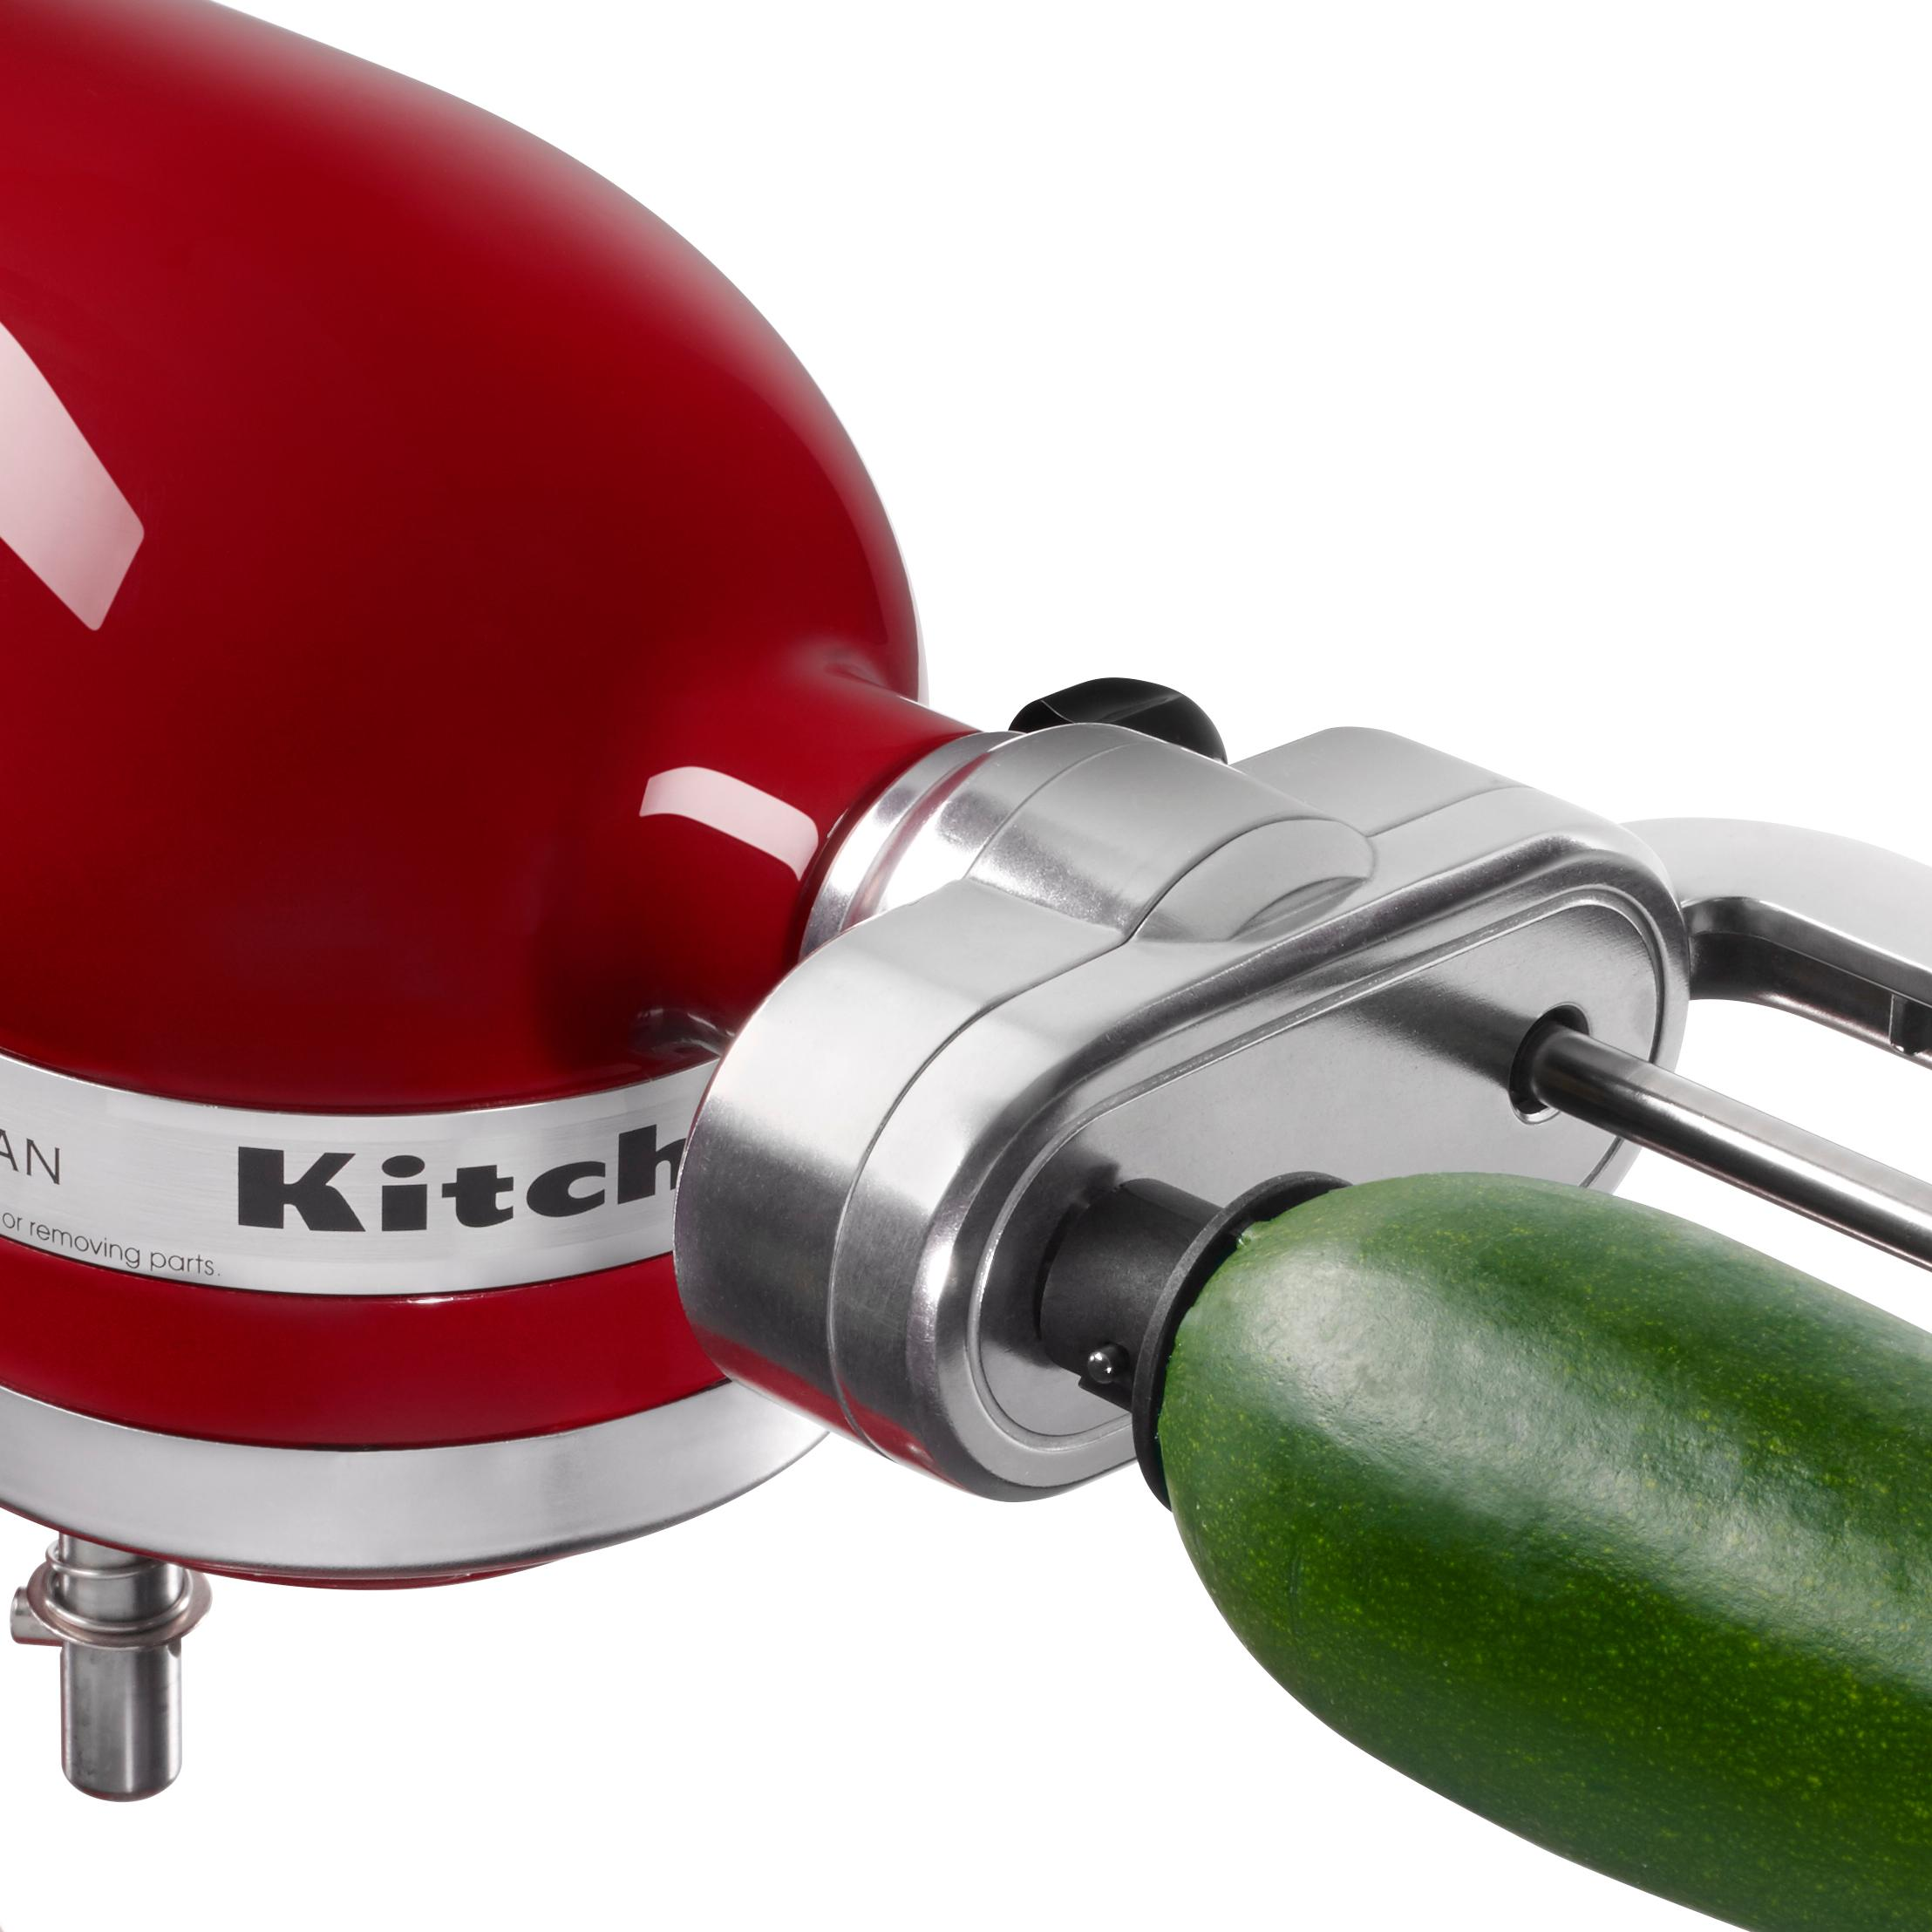 kitchenaid ksm1apc spiralizer attachment with peel core